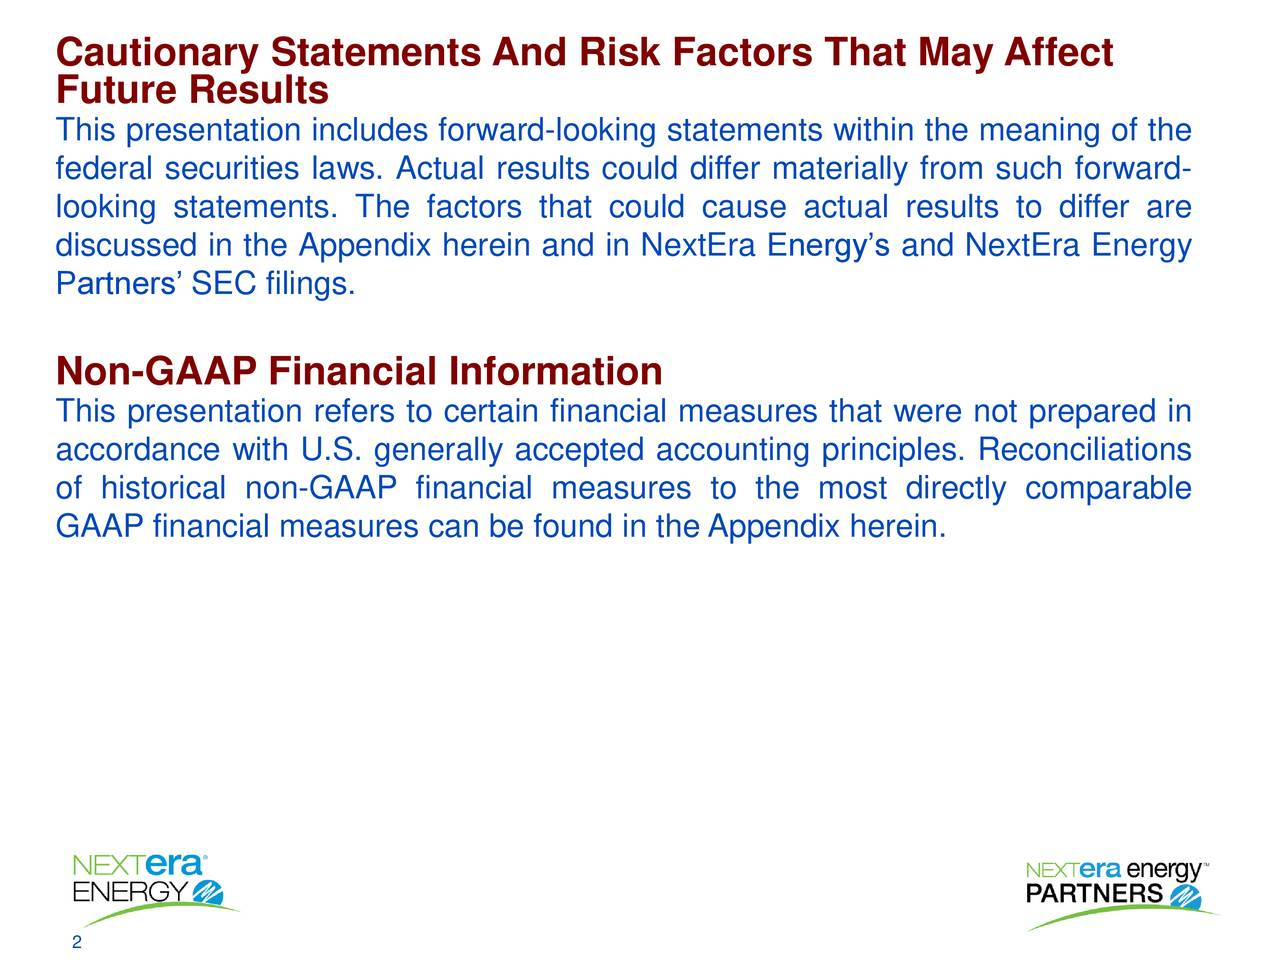 Future Results This presentation includes forward-looking statements within the meaning of the federal securities laws. Actual results could differ materially from such forward- looking statements. The factors that could cause actual results to differ are discussed in the Appendix herein and in NextEra Energy's and NextEra Energy Partners' SEC filings. Non-GAAP Financial Information This presentation refers to certain financial measures that were not prepared in accordance with U.S. generally accepted accounting principles. Reconciliations of historical non-GAAP financial measures to the most directly comparable GAAP financial measures can be found in the Appendix herein.